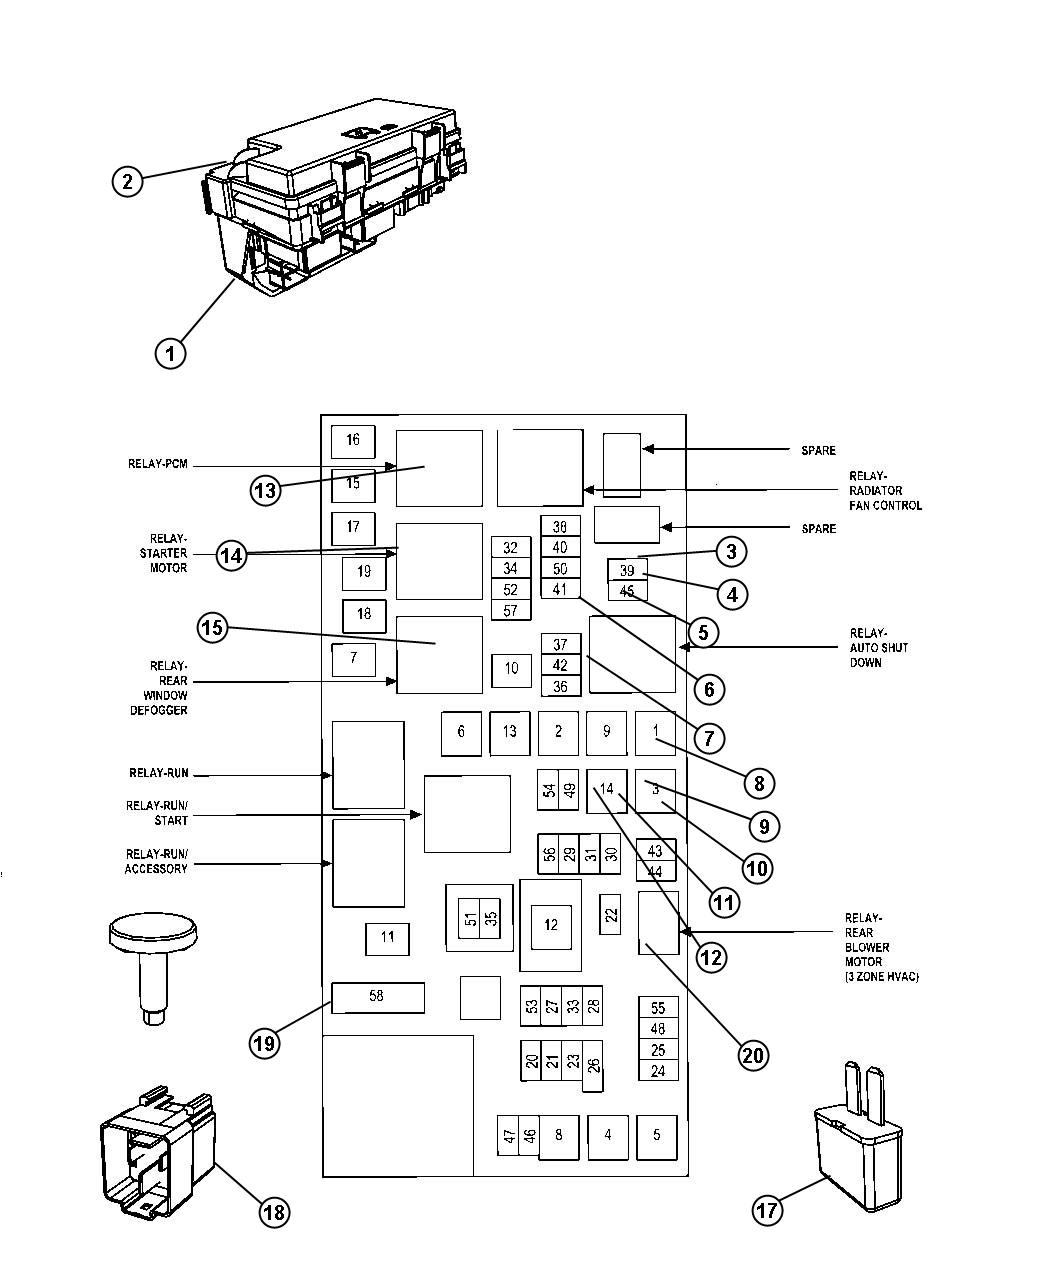 1989 Dodge Fuse Box Diagram - Wiring Schematics on